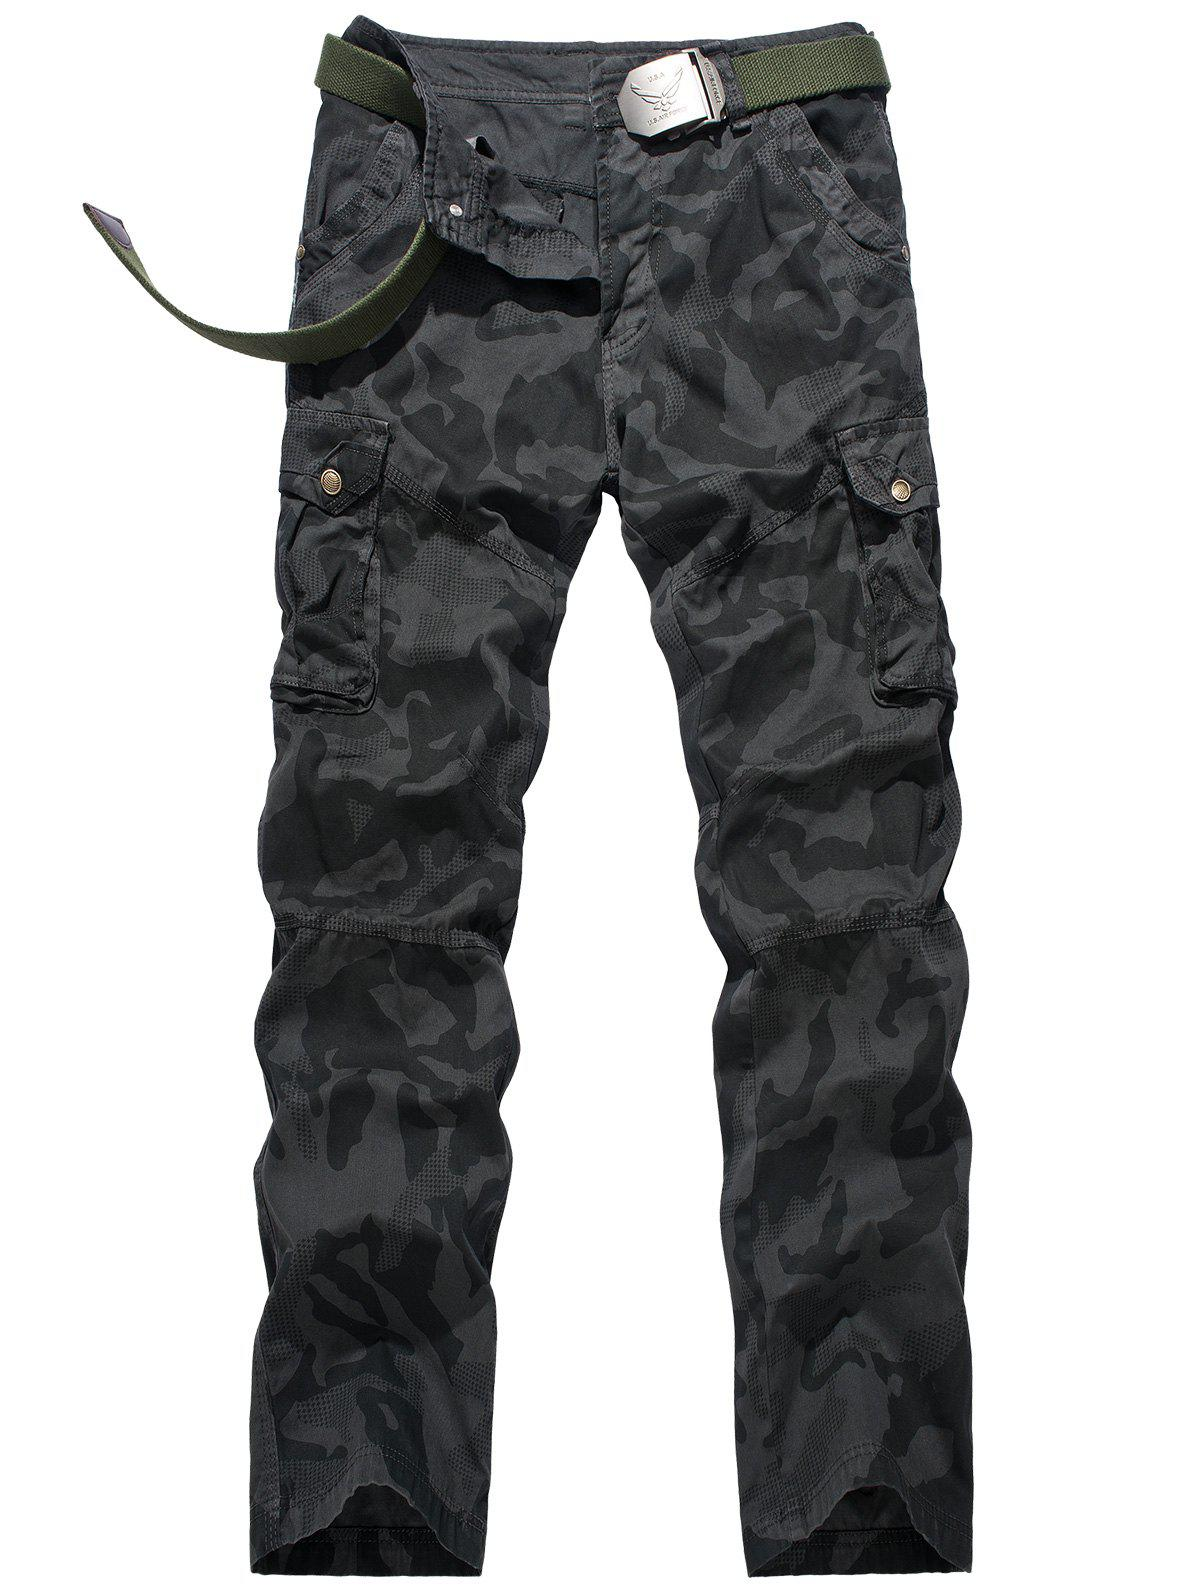 Swallow Gird Camouflage Cargo Pants - DEEP GRAY 38